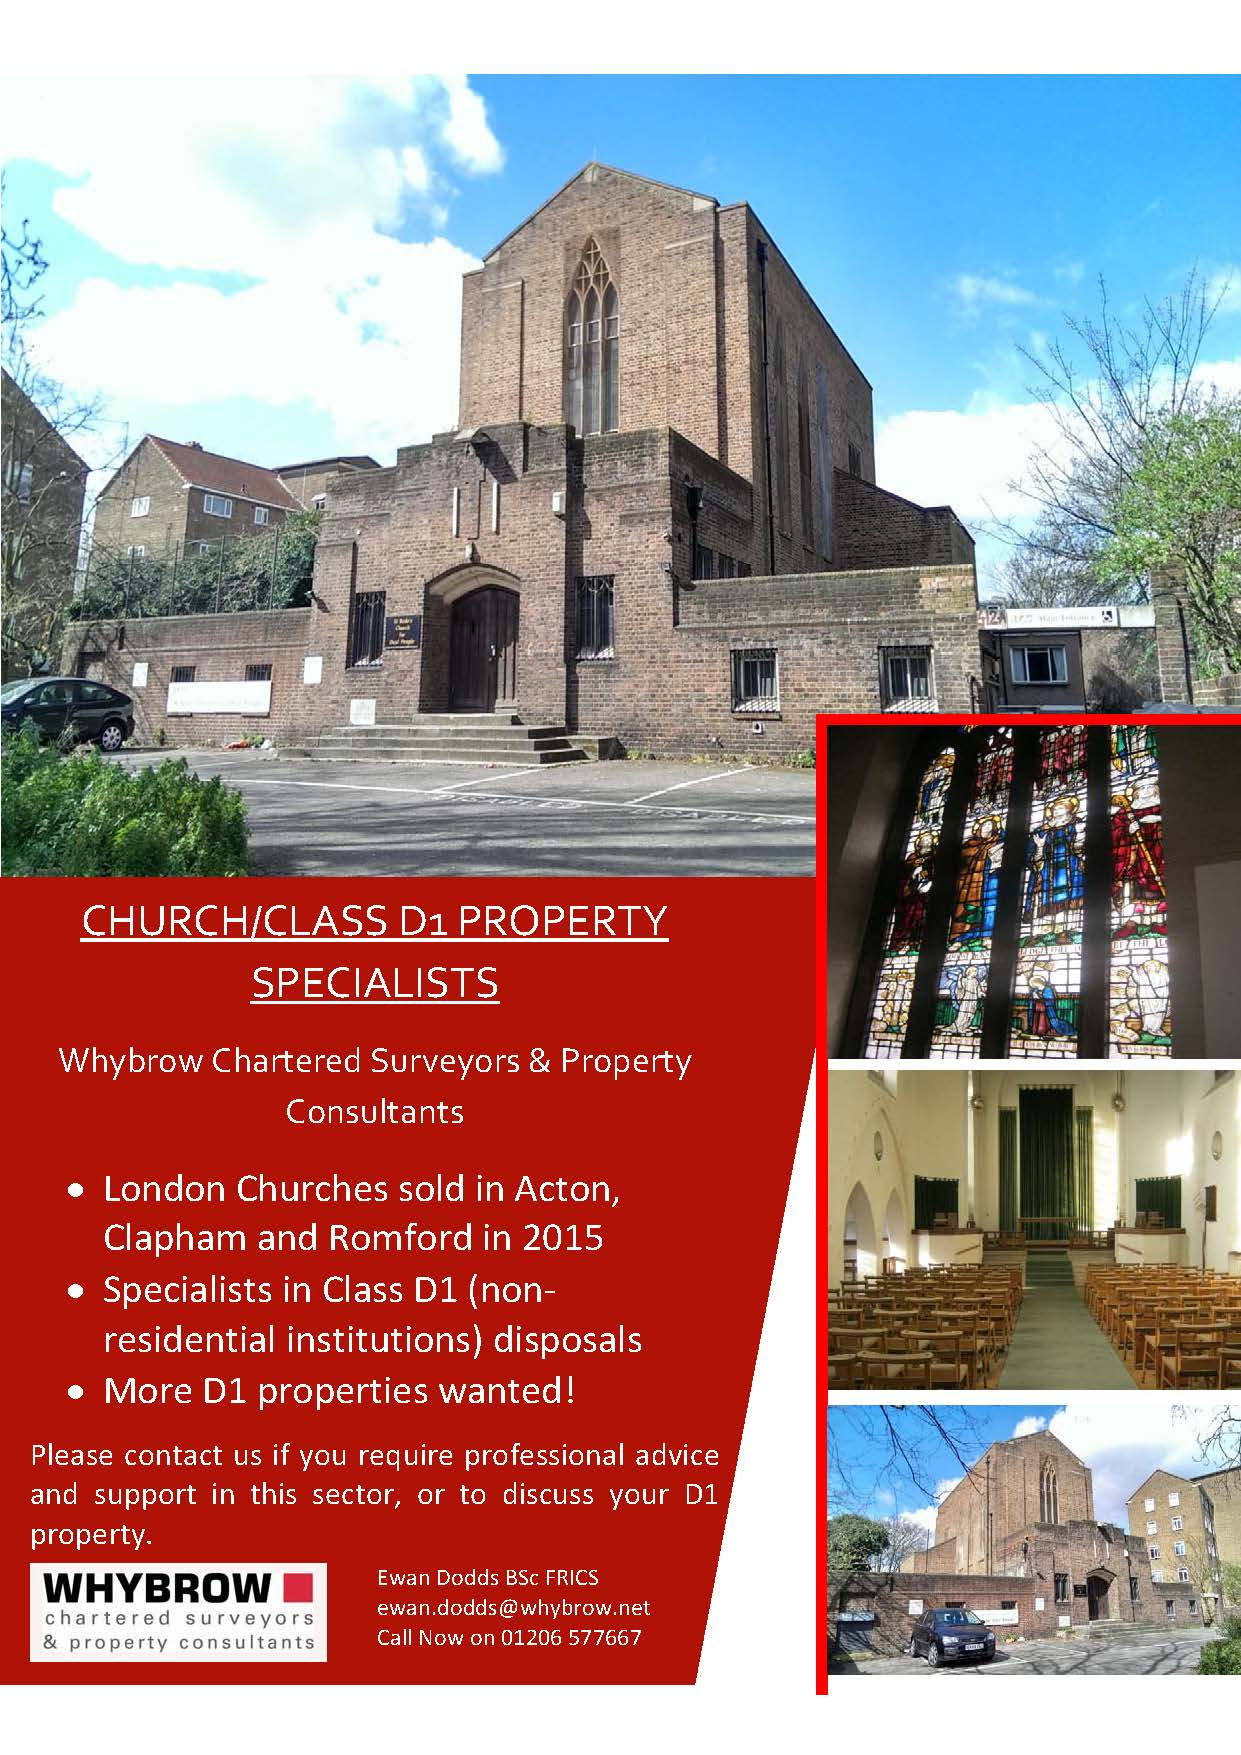 D1 CHURCH DISPOSALS IN LONDON